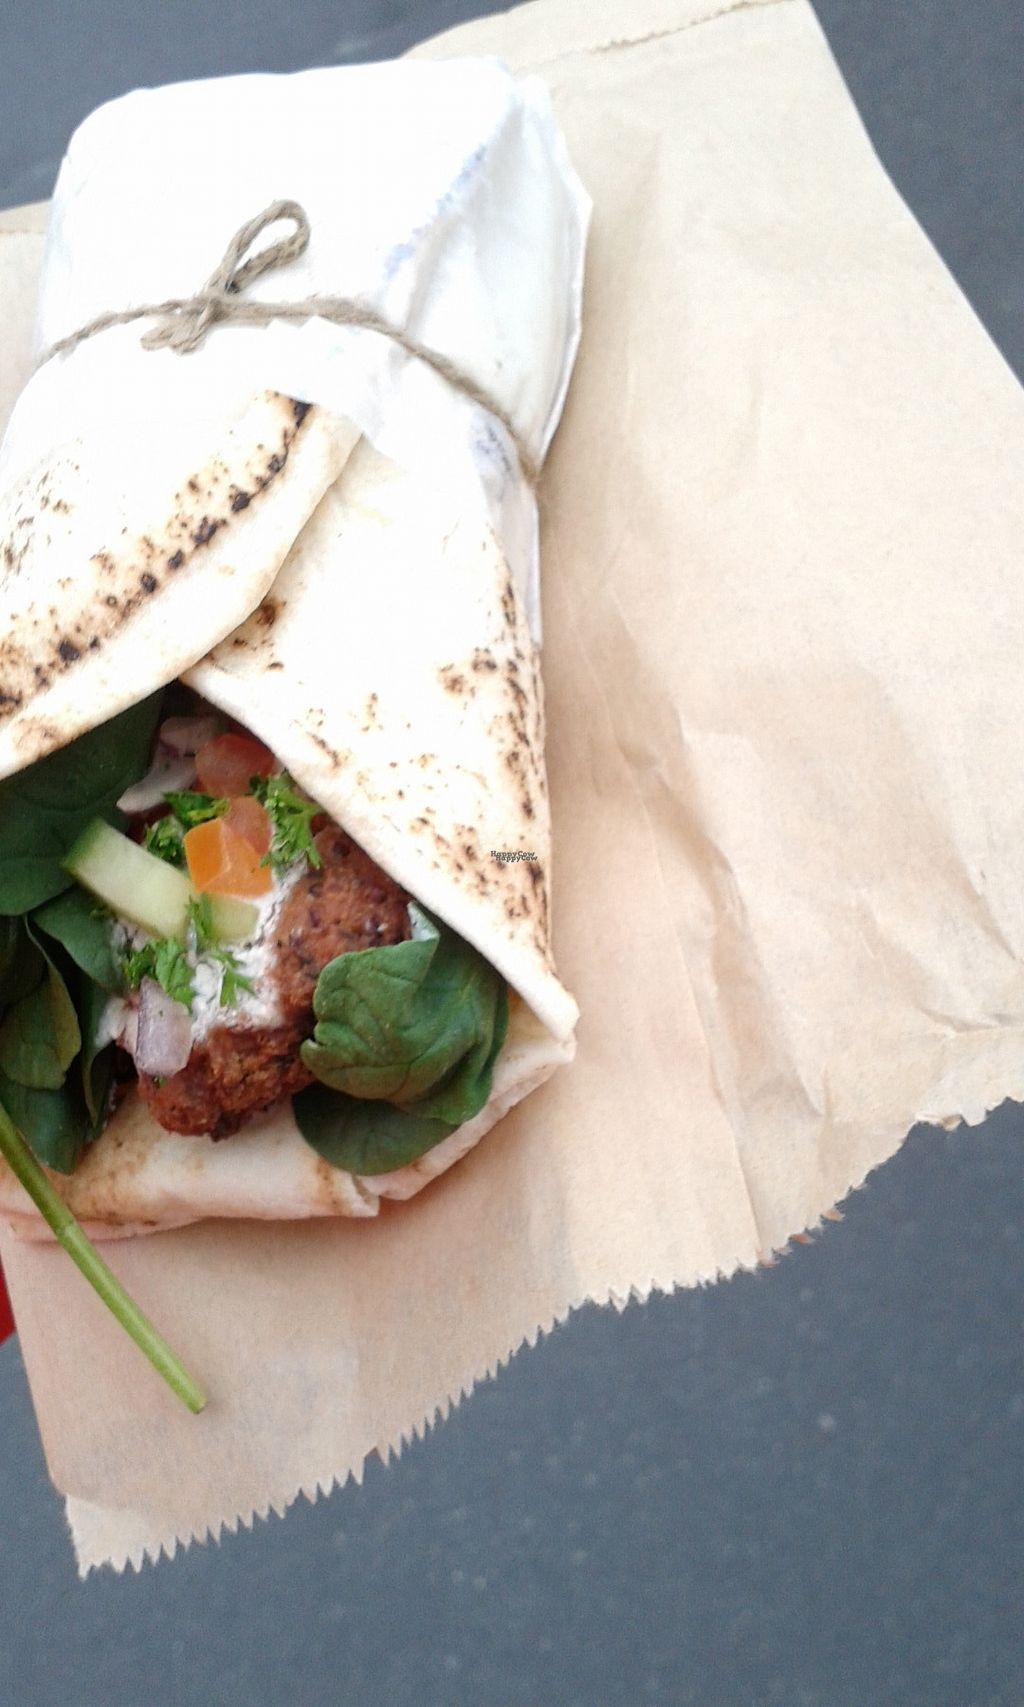 """Photo of Two Birds Eatery  by <a href=""""/members/profile/citizenInsane"""">citizenInsane</a> <br/>(partial) vegan falafel wrap, Two Birds <br/> October 10, 2016  - <a href='/contact/abuse/image/51422/180980'>Report</a>"""